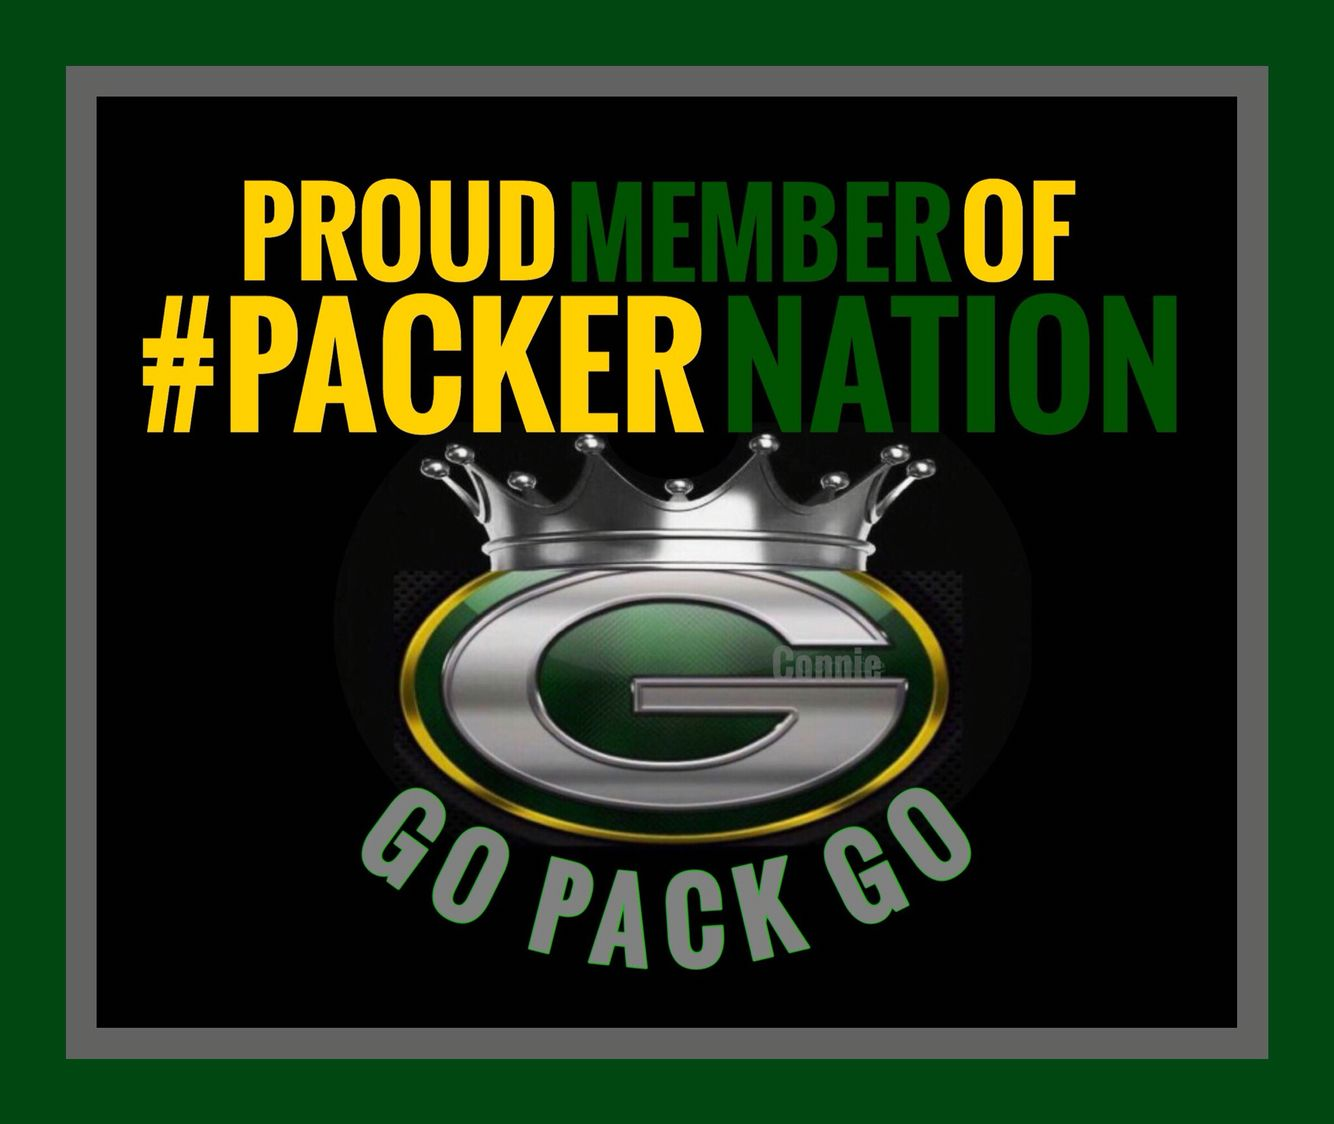 Packer Nation Rules Green Bay Packers Fans Green Bay Packers Go Packers